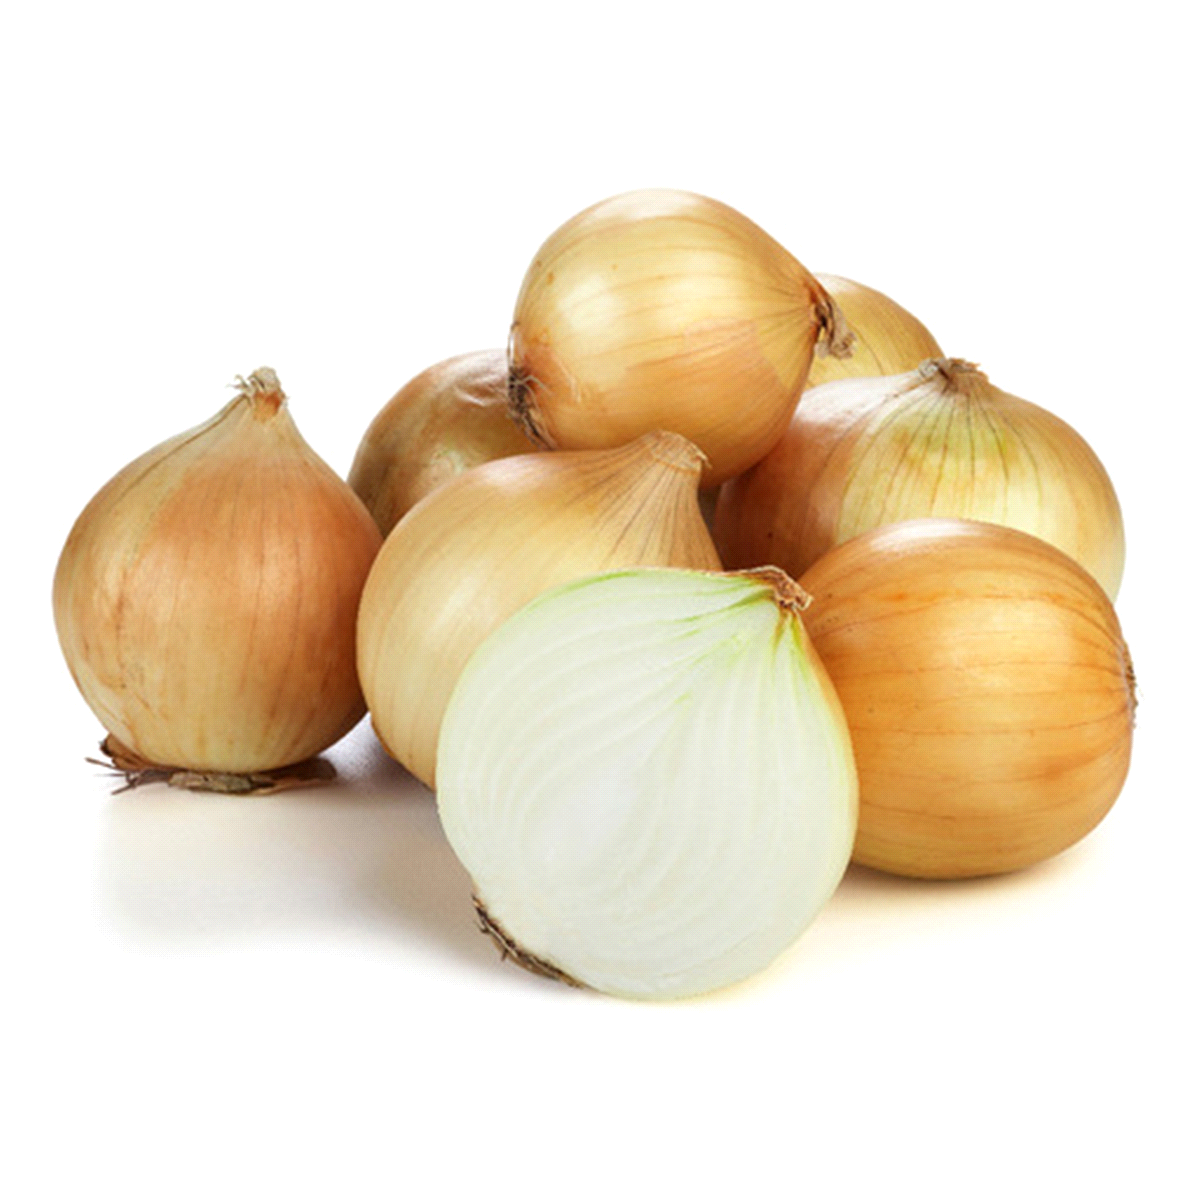 Yellow onions become sweet when sautéed.